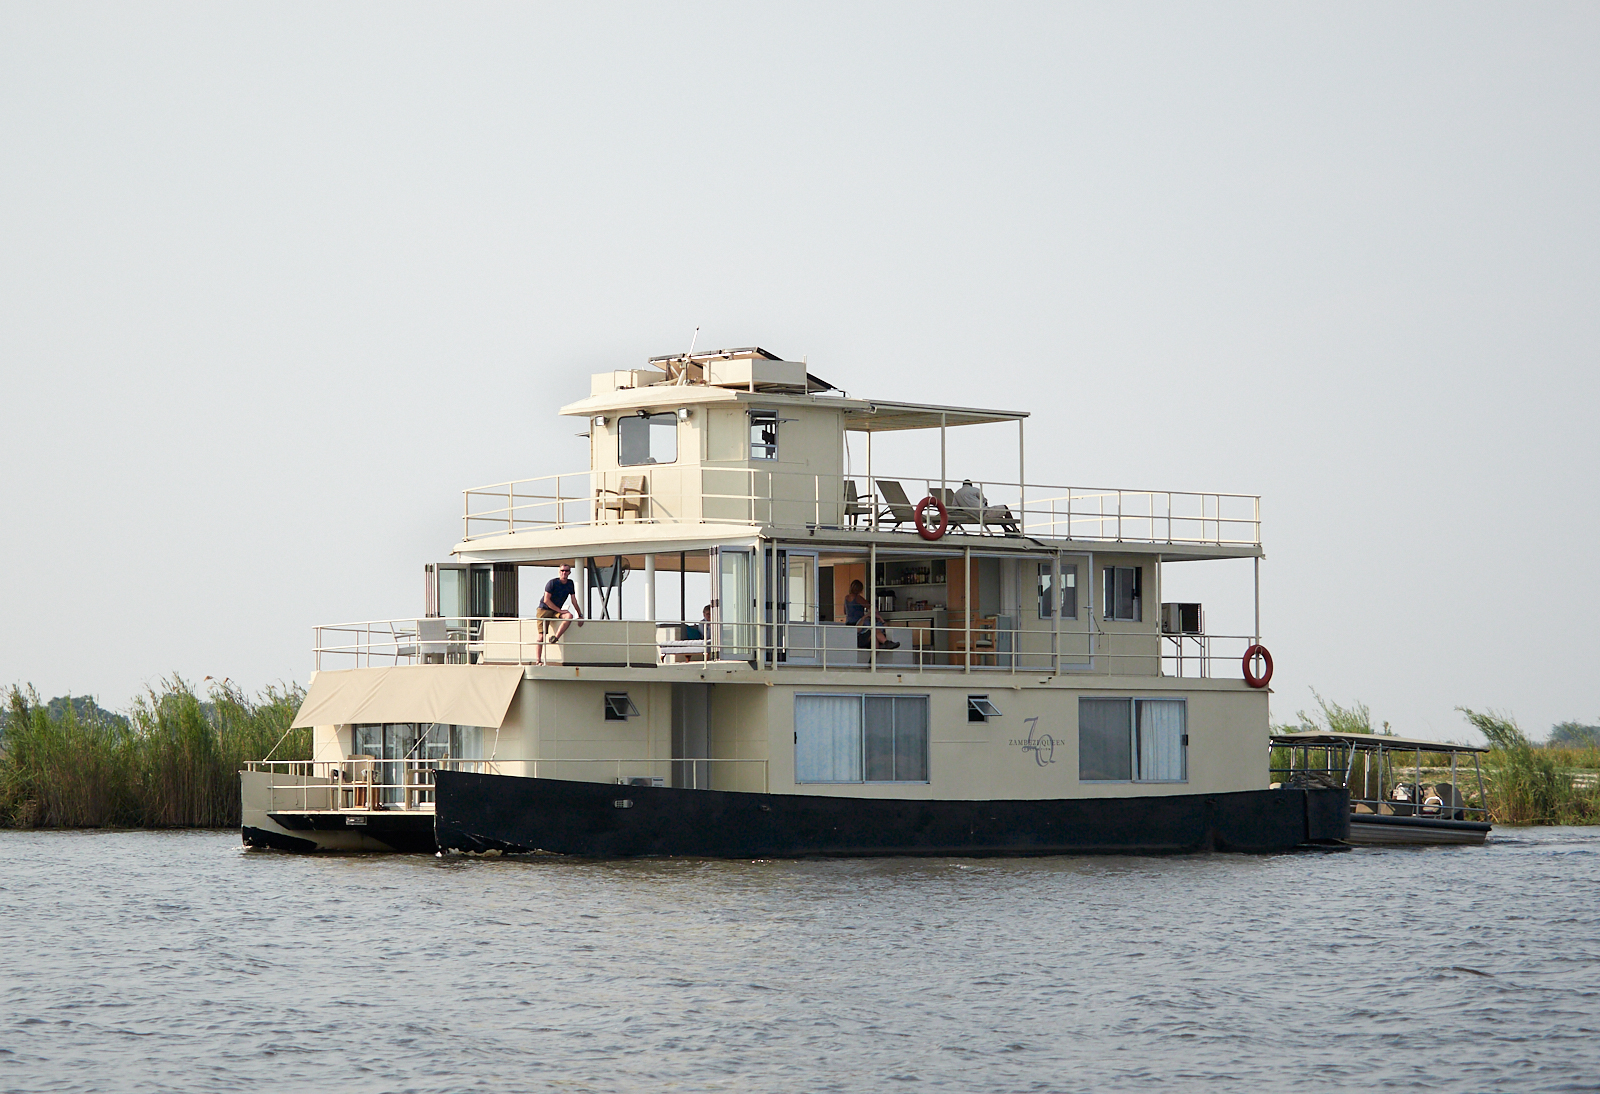 The Zambezi Queen paddle boat